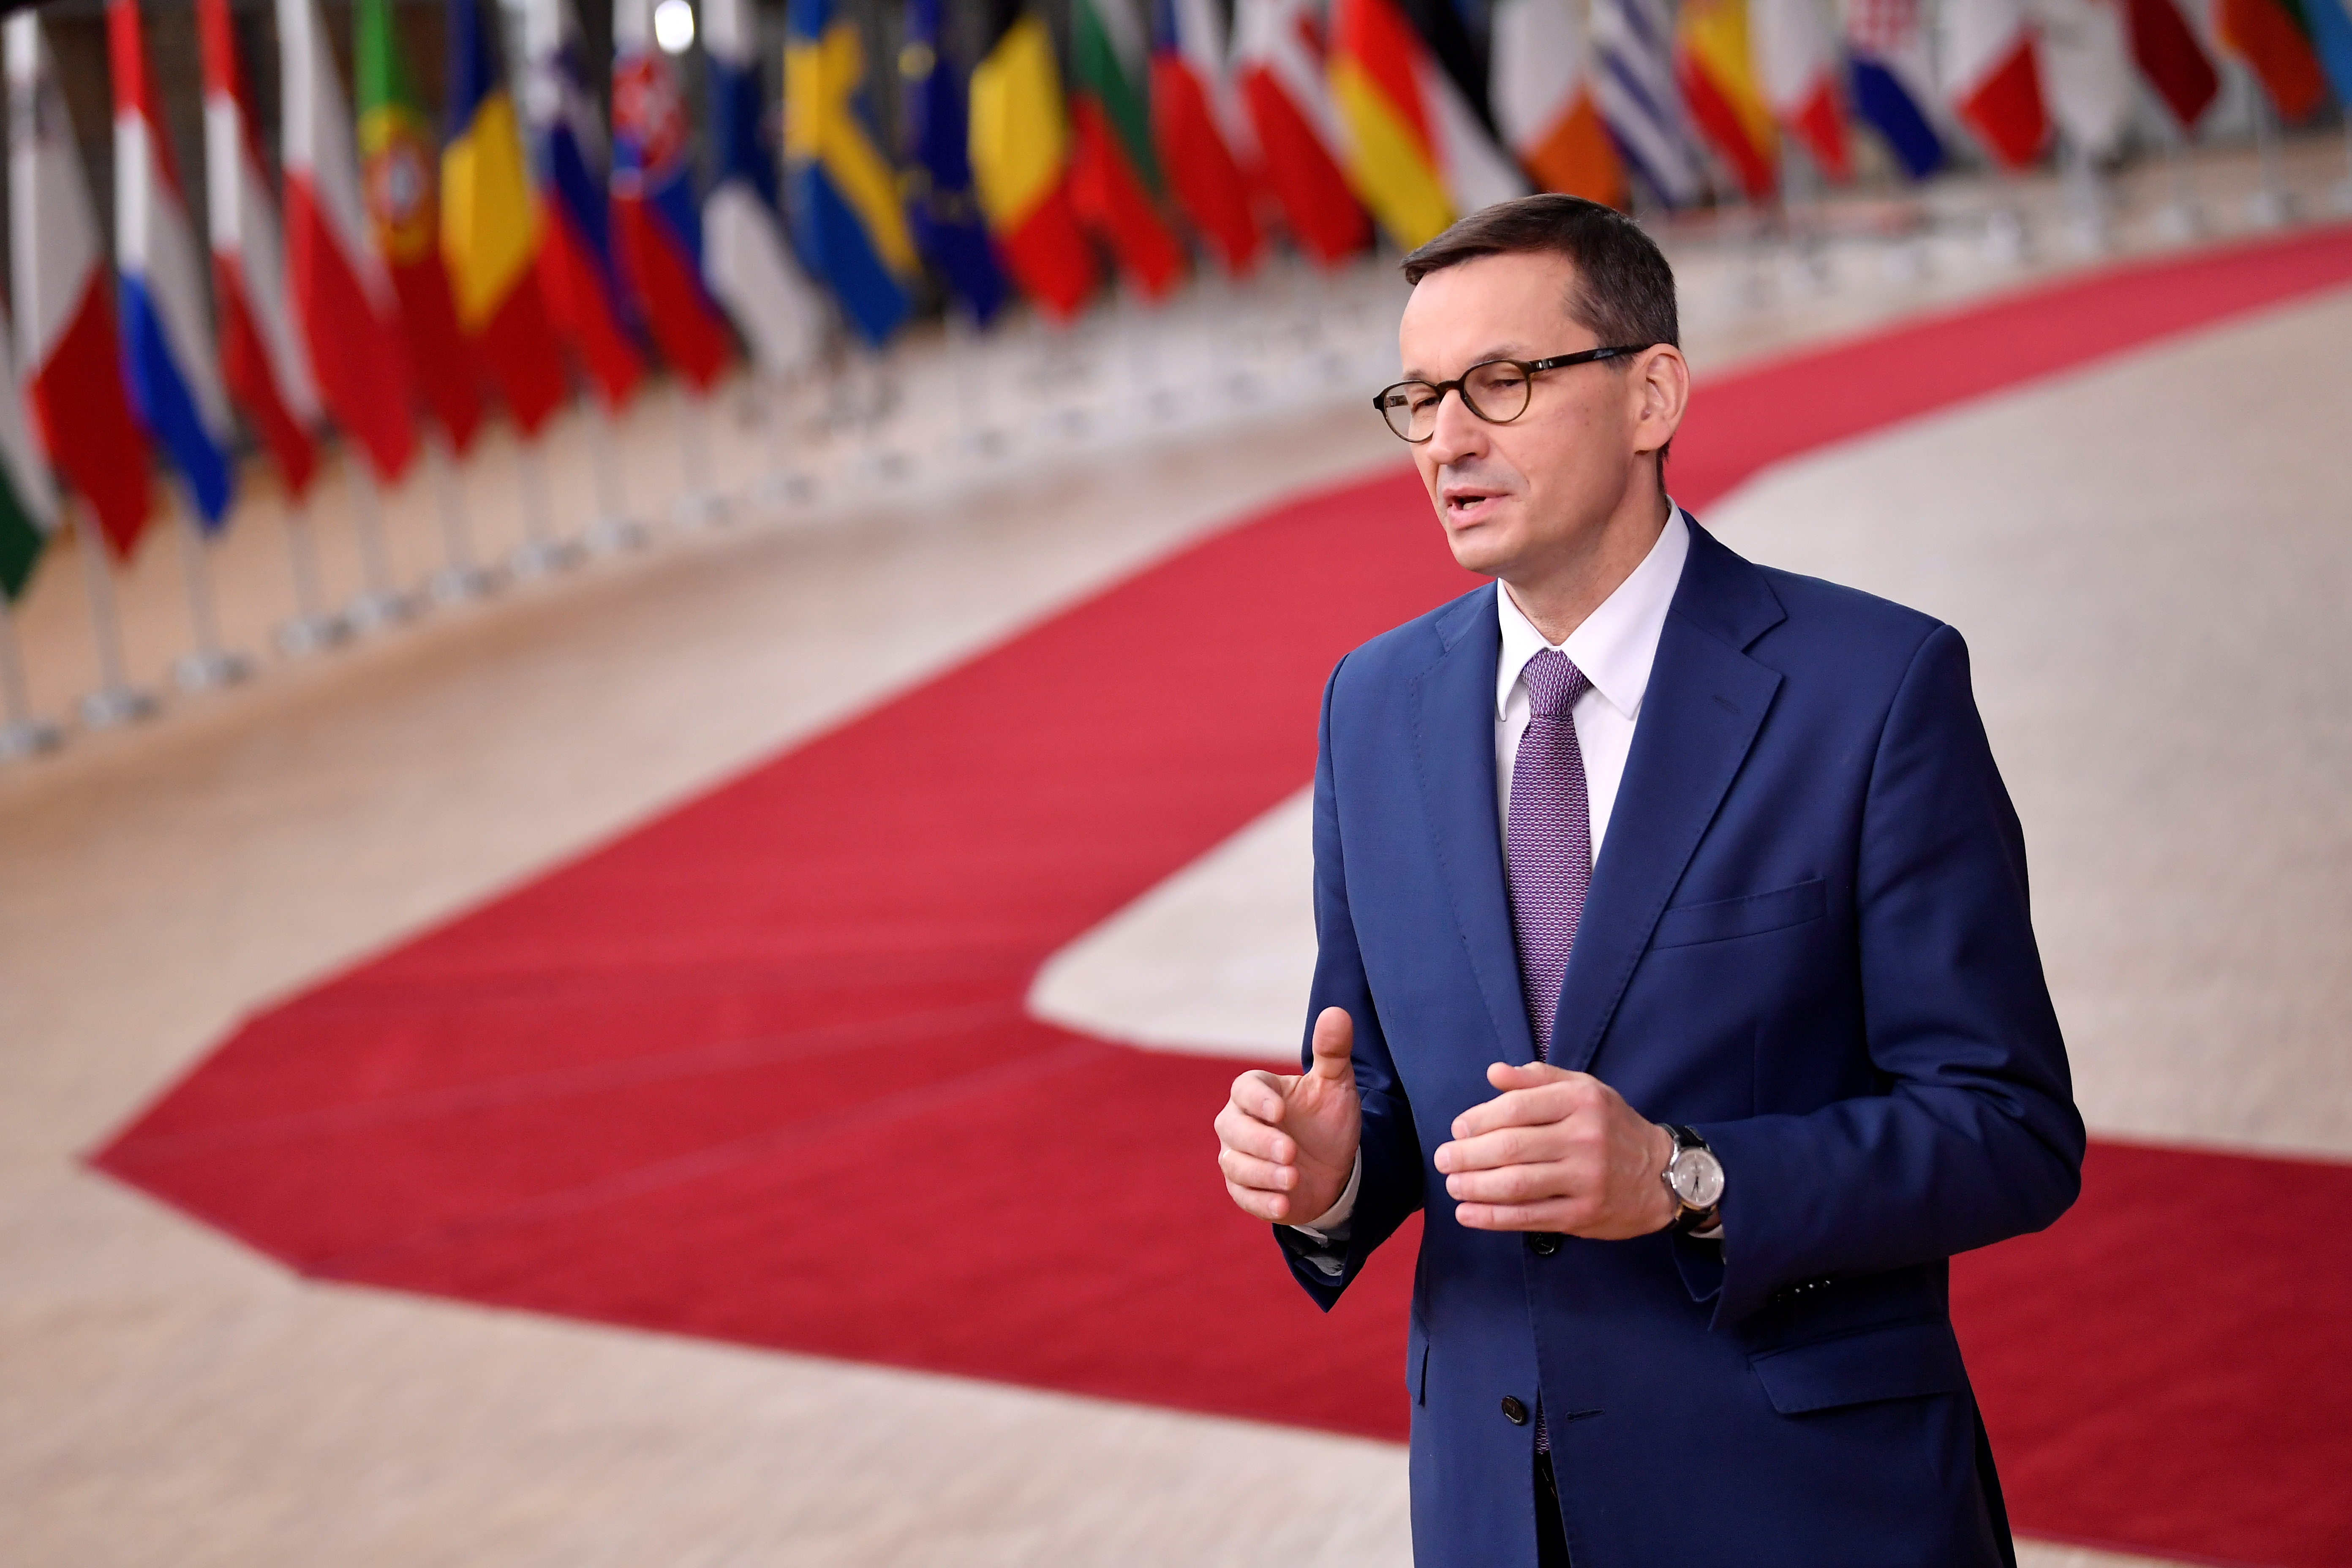 Poland's Prime Minister Mateusz Morawiecki speaks as he arrives to attend a face-to-face EU summit amid the coronavirus disease (COVID-19) lockdown in Brussels, Belgium December 10, 2020. John Thys/Pool via REUTERS/File Photo